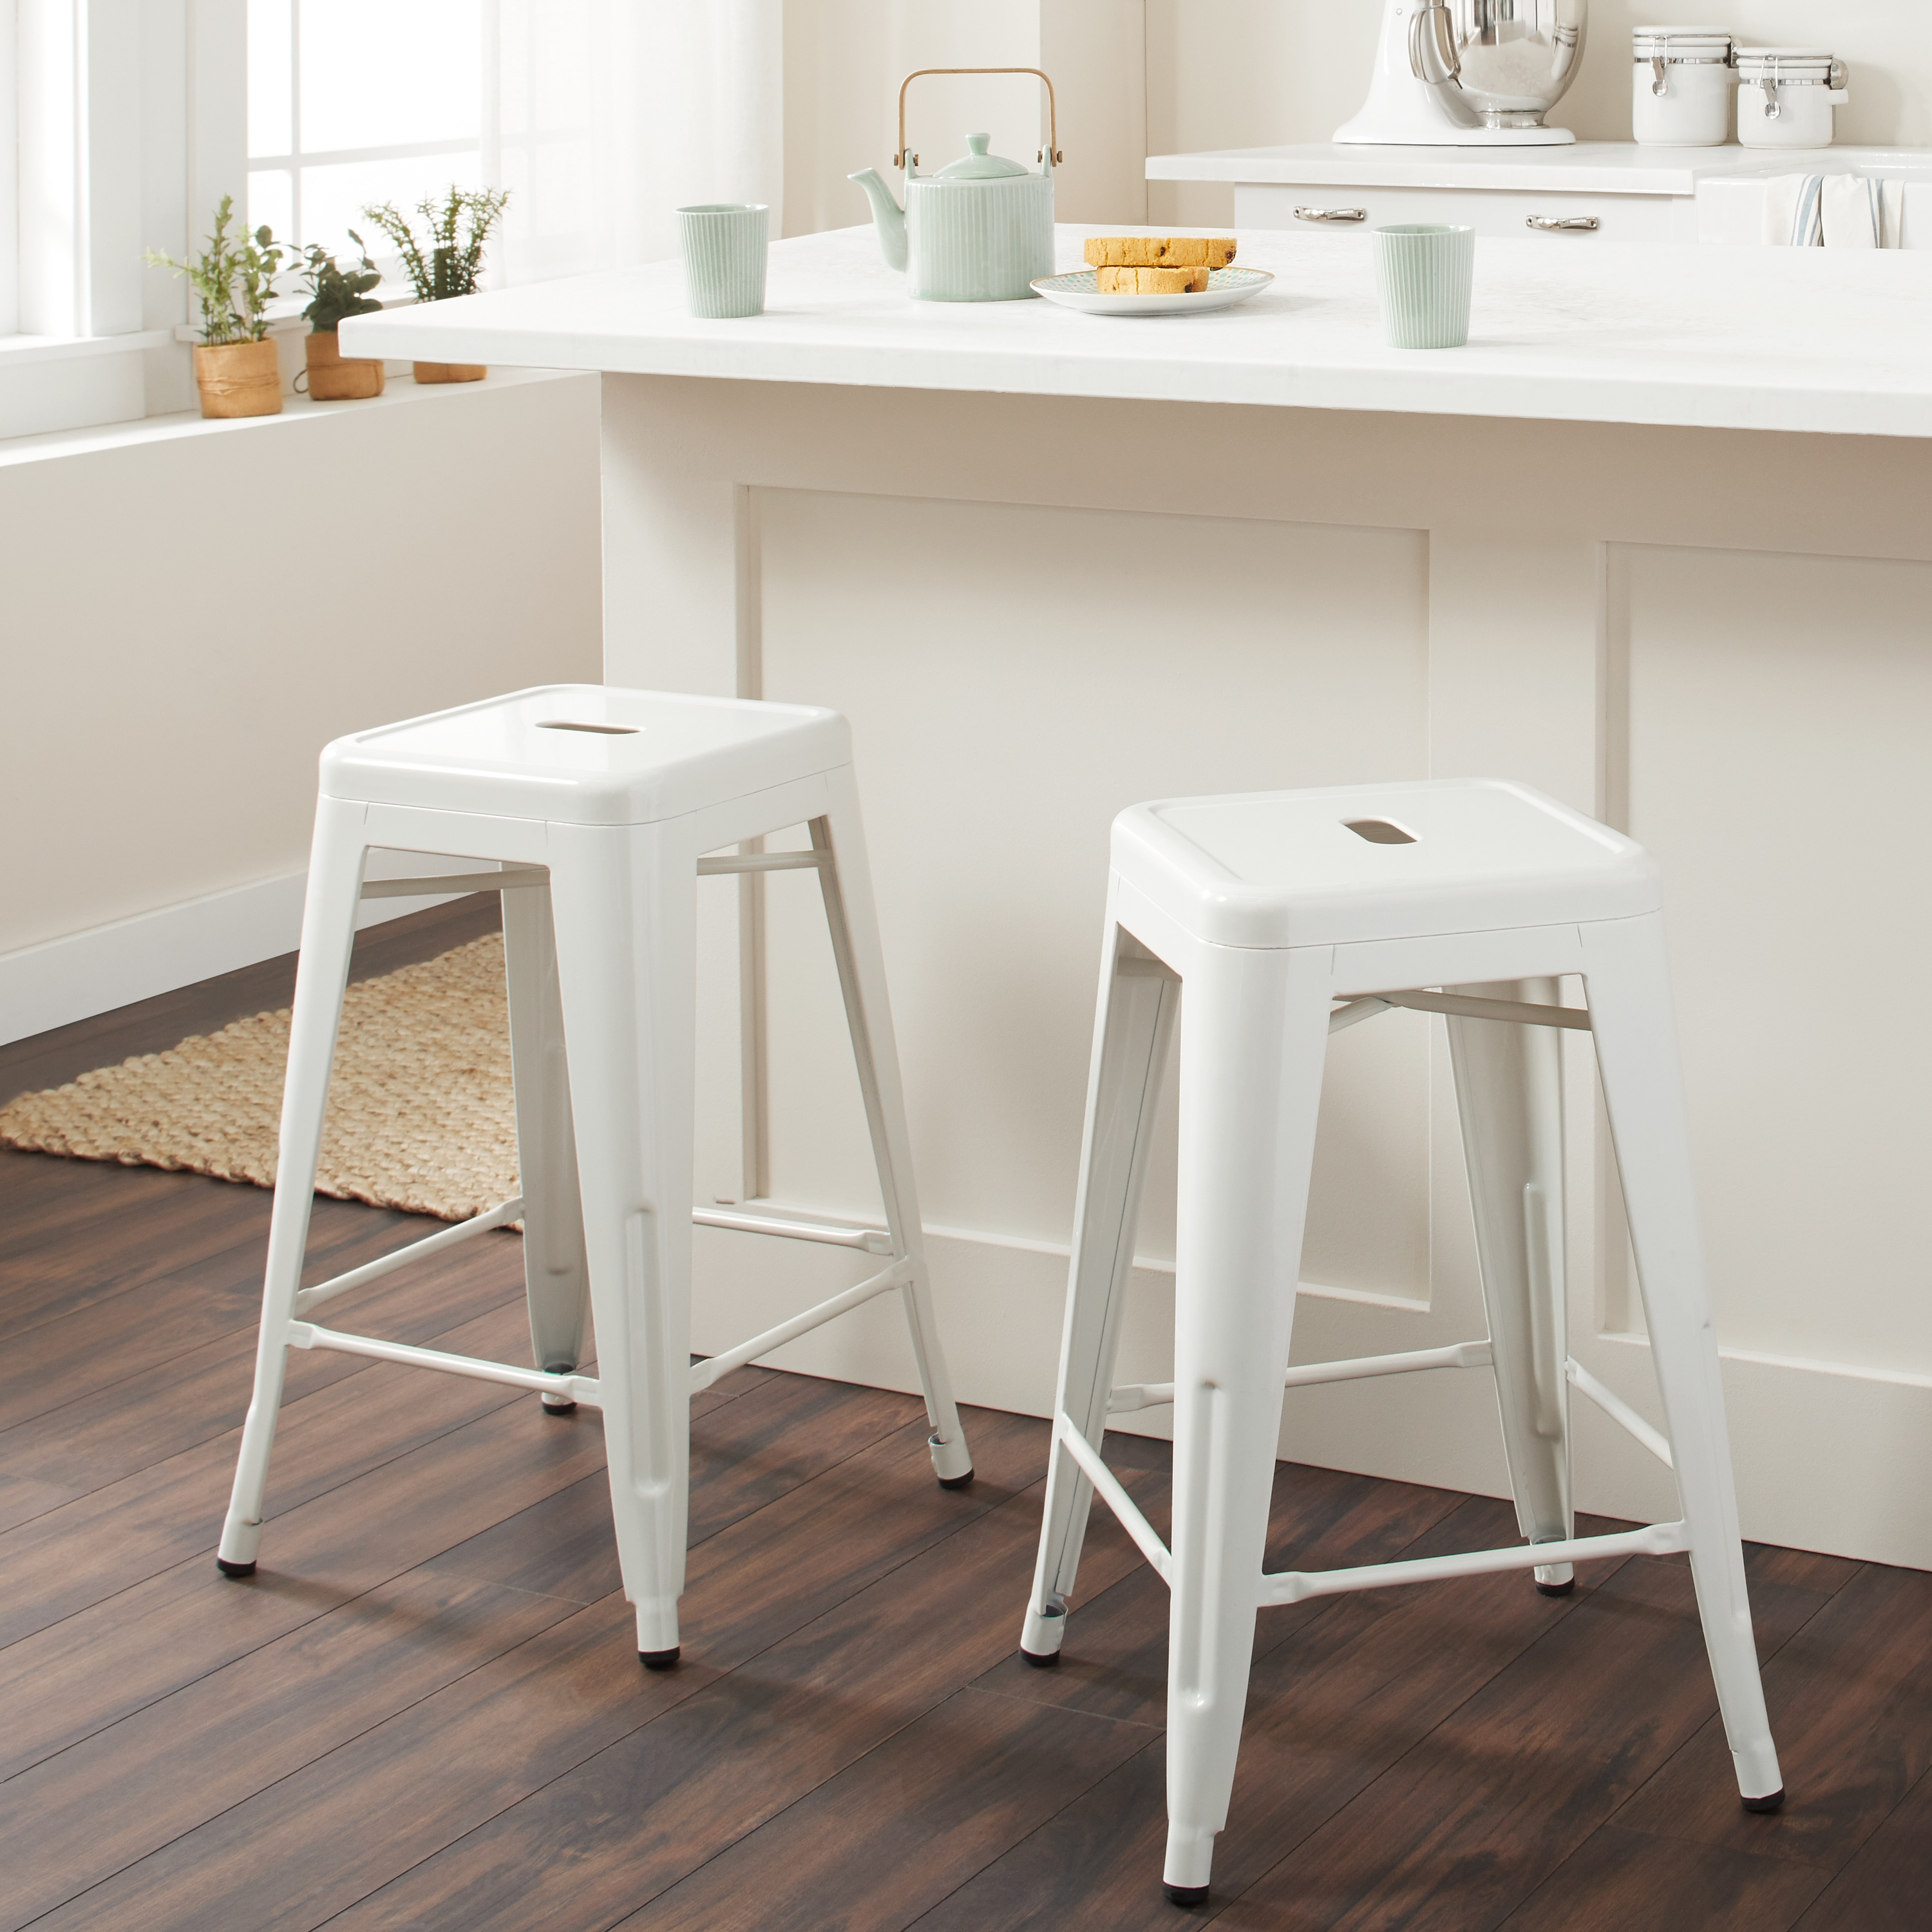 Table And Bar Stools Tabouret 24 Inch White Metal Counter Stools Set Of 2